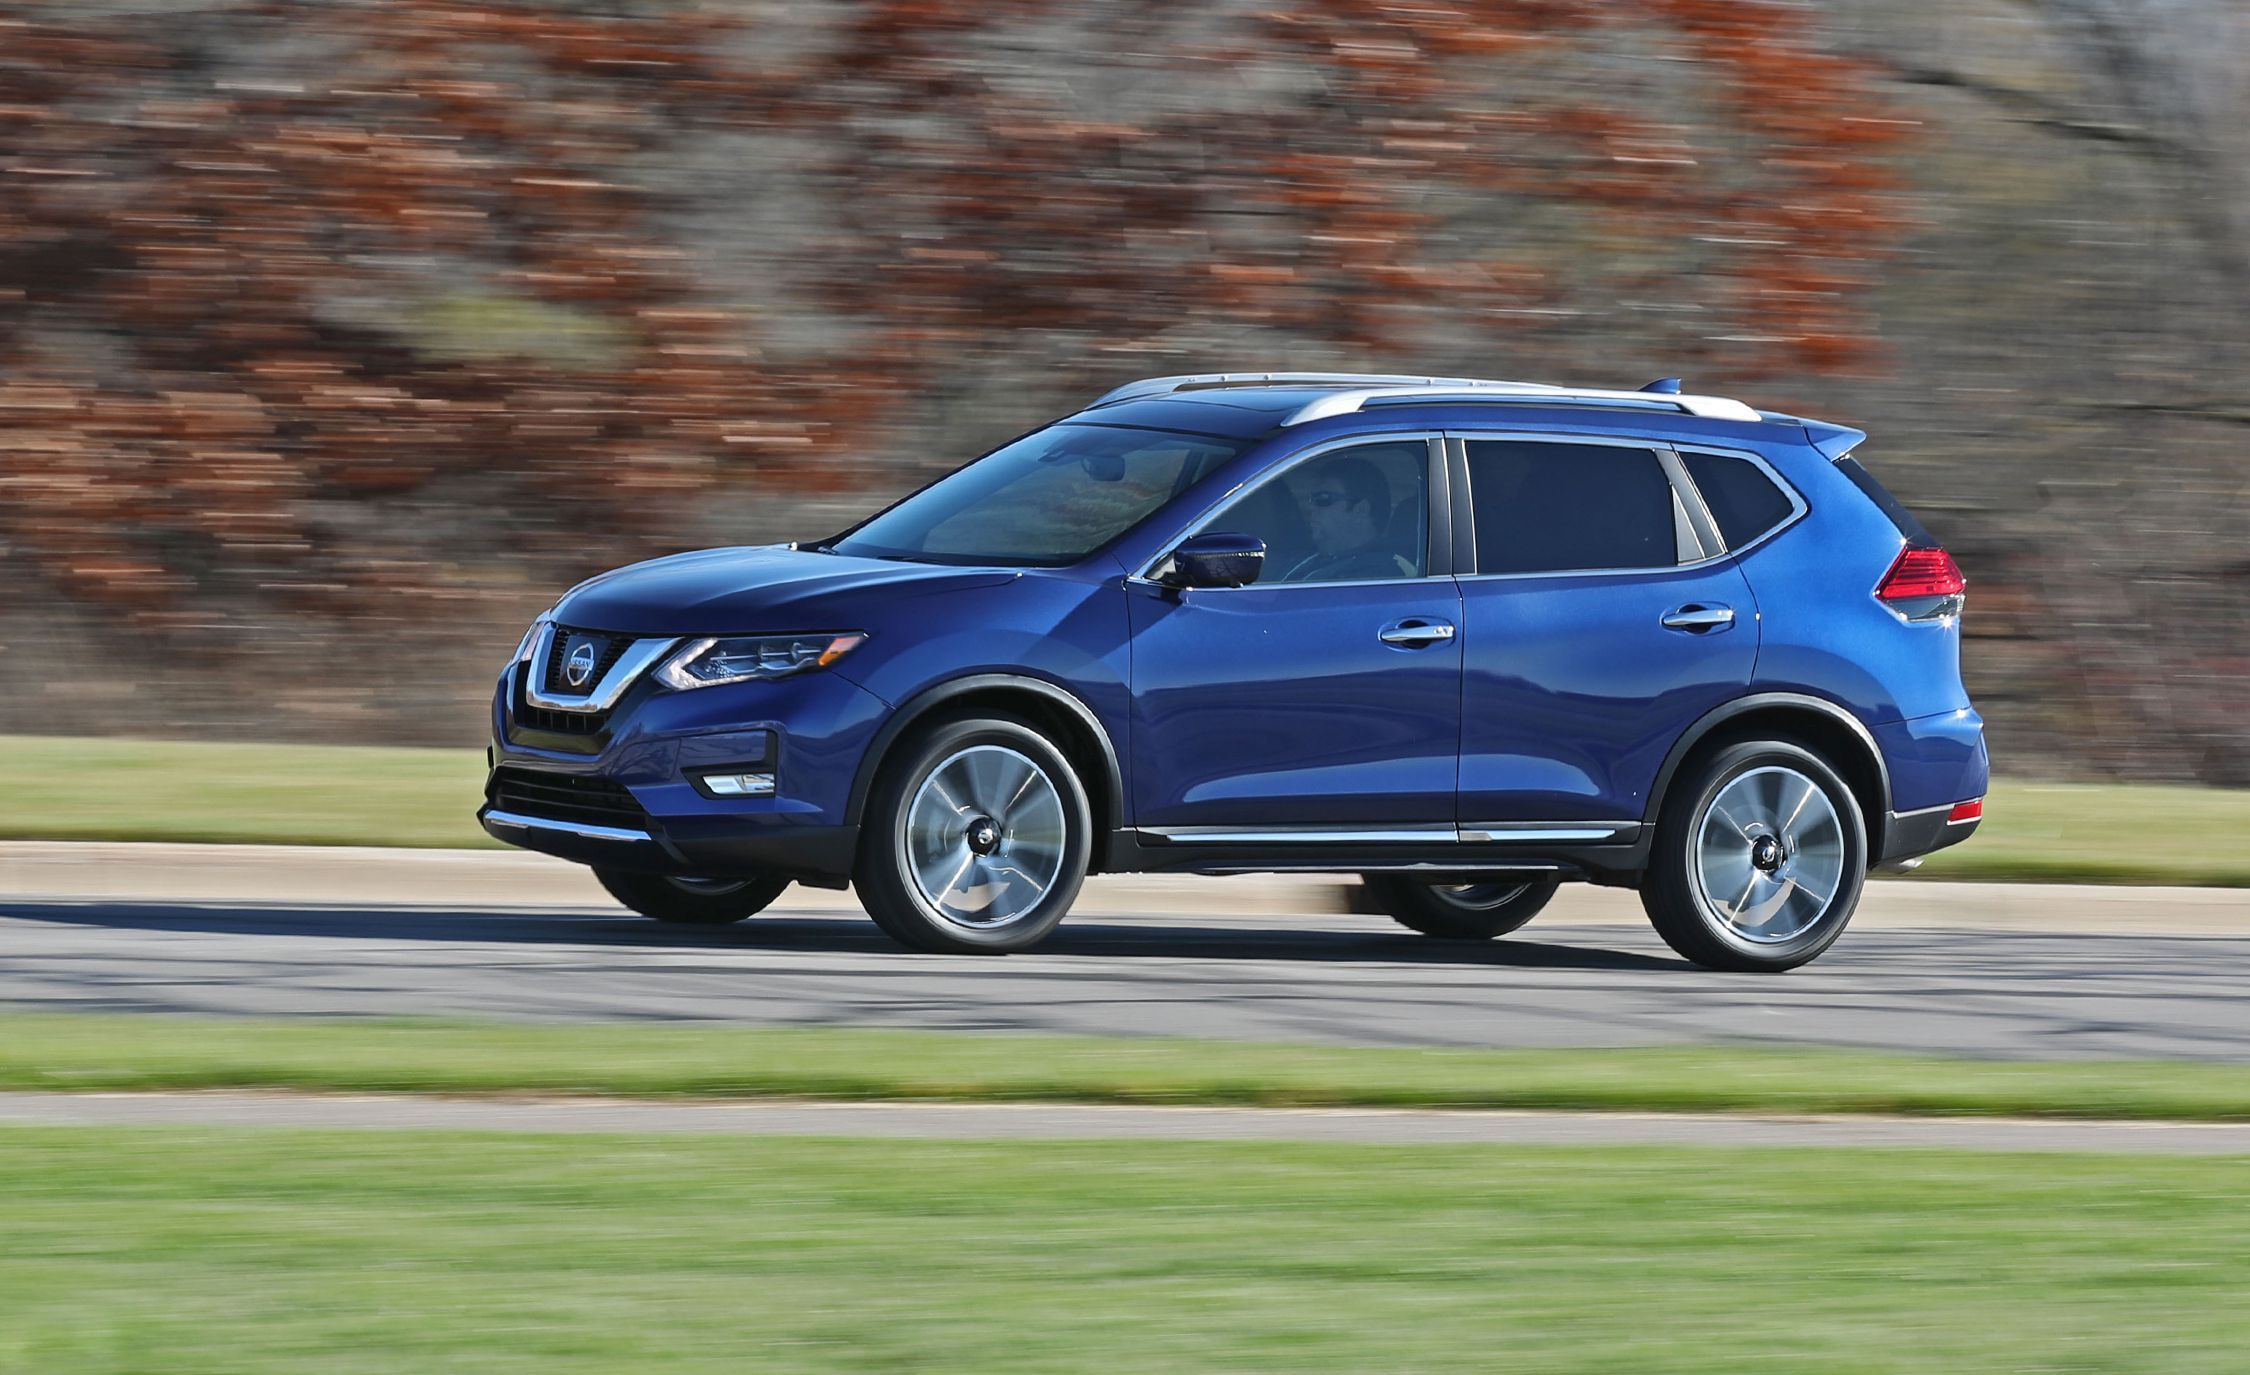 2019 Nissan Rogue Review, Price, Specs | Nissan of North ...